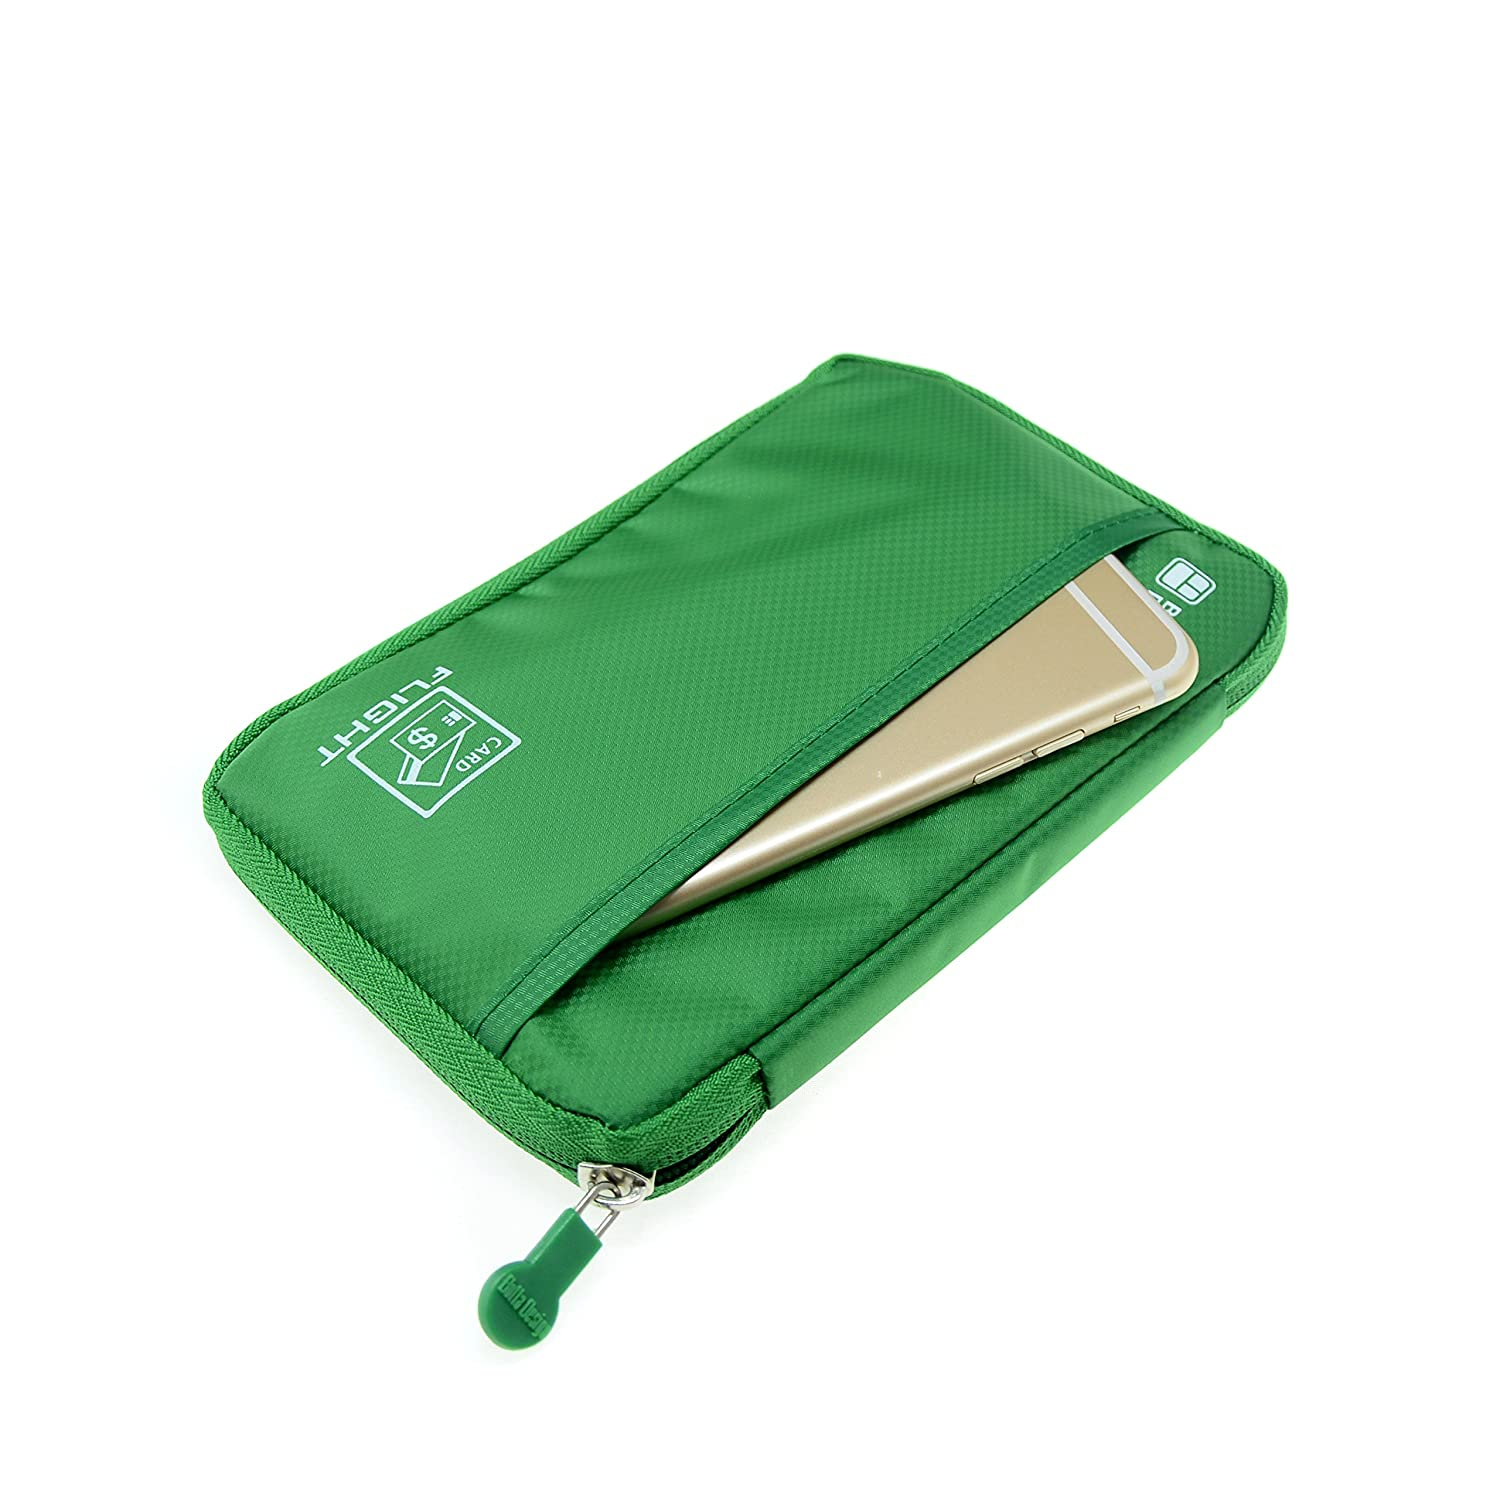 Green Lustear Travel Wallet Passports Holder Documents Organizer Zipper Case